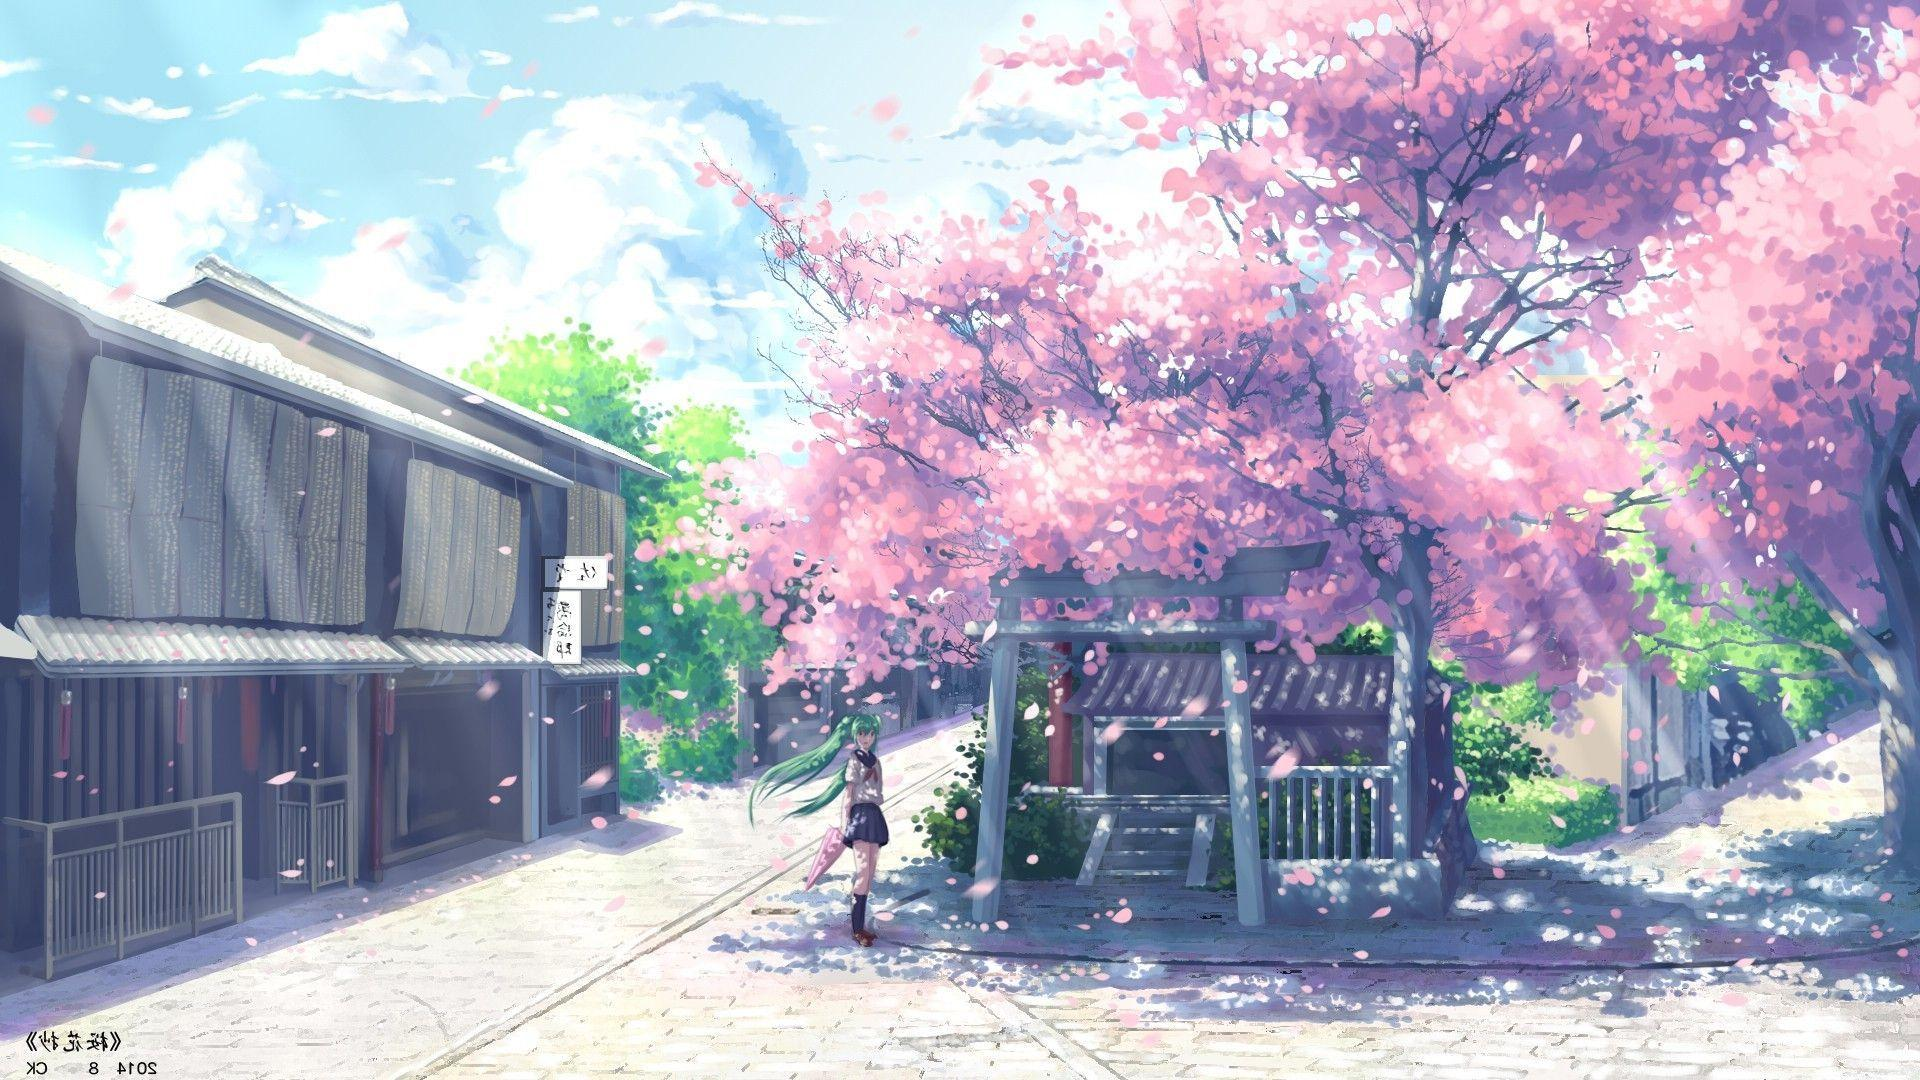 Anime Backgrounds City Posted By Ethan Anderson